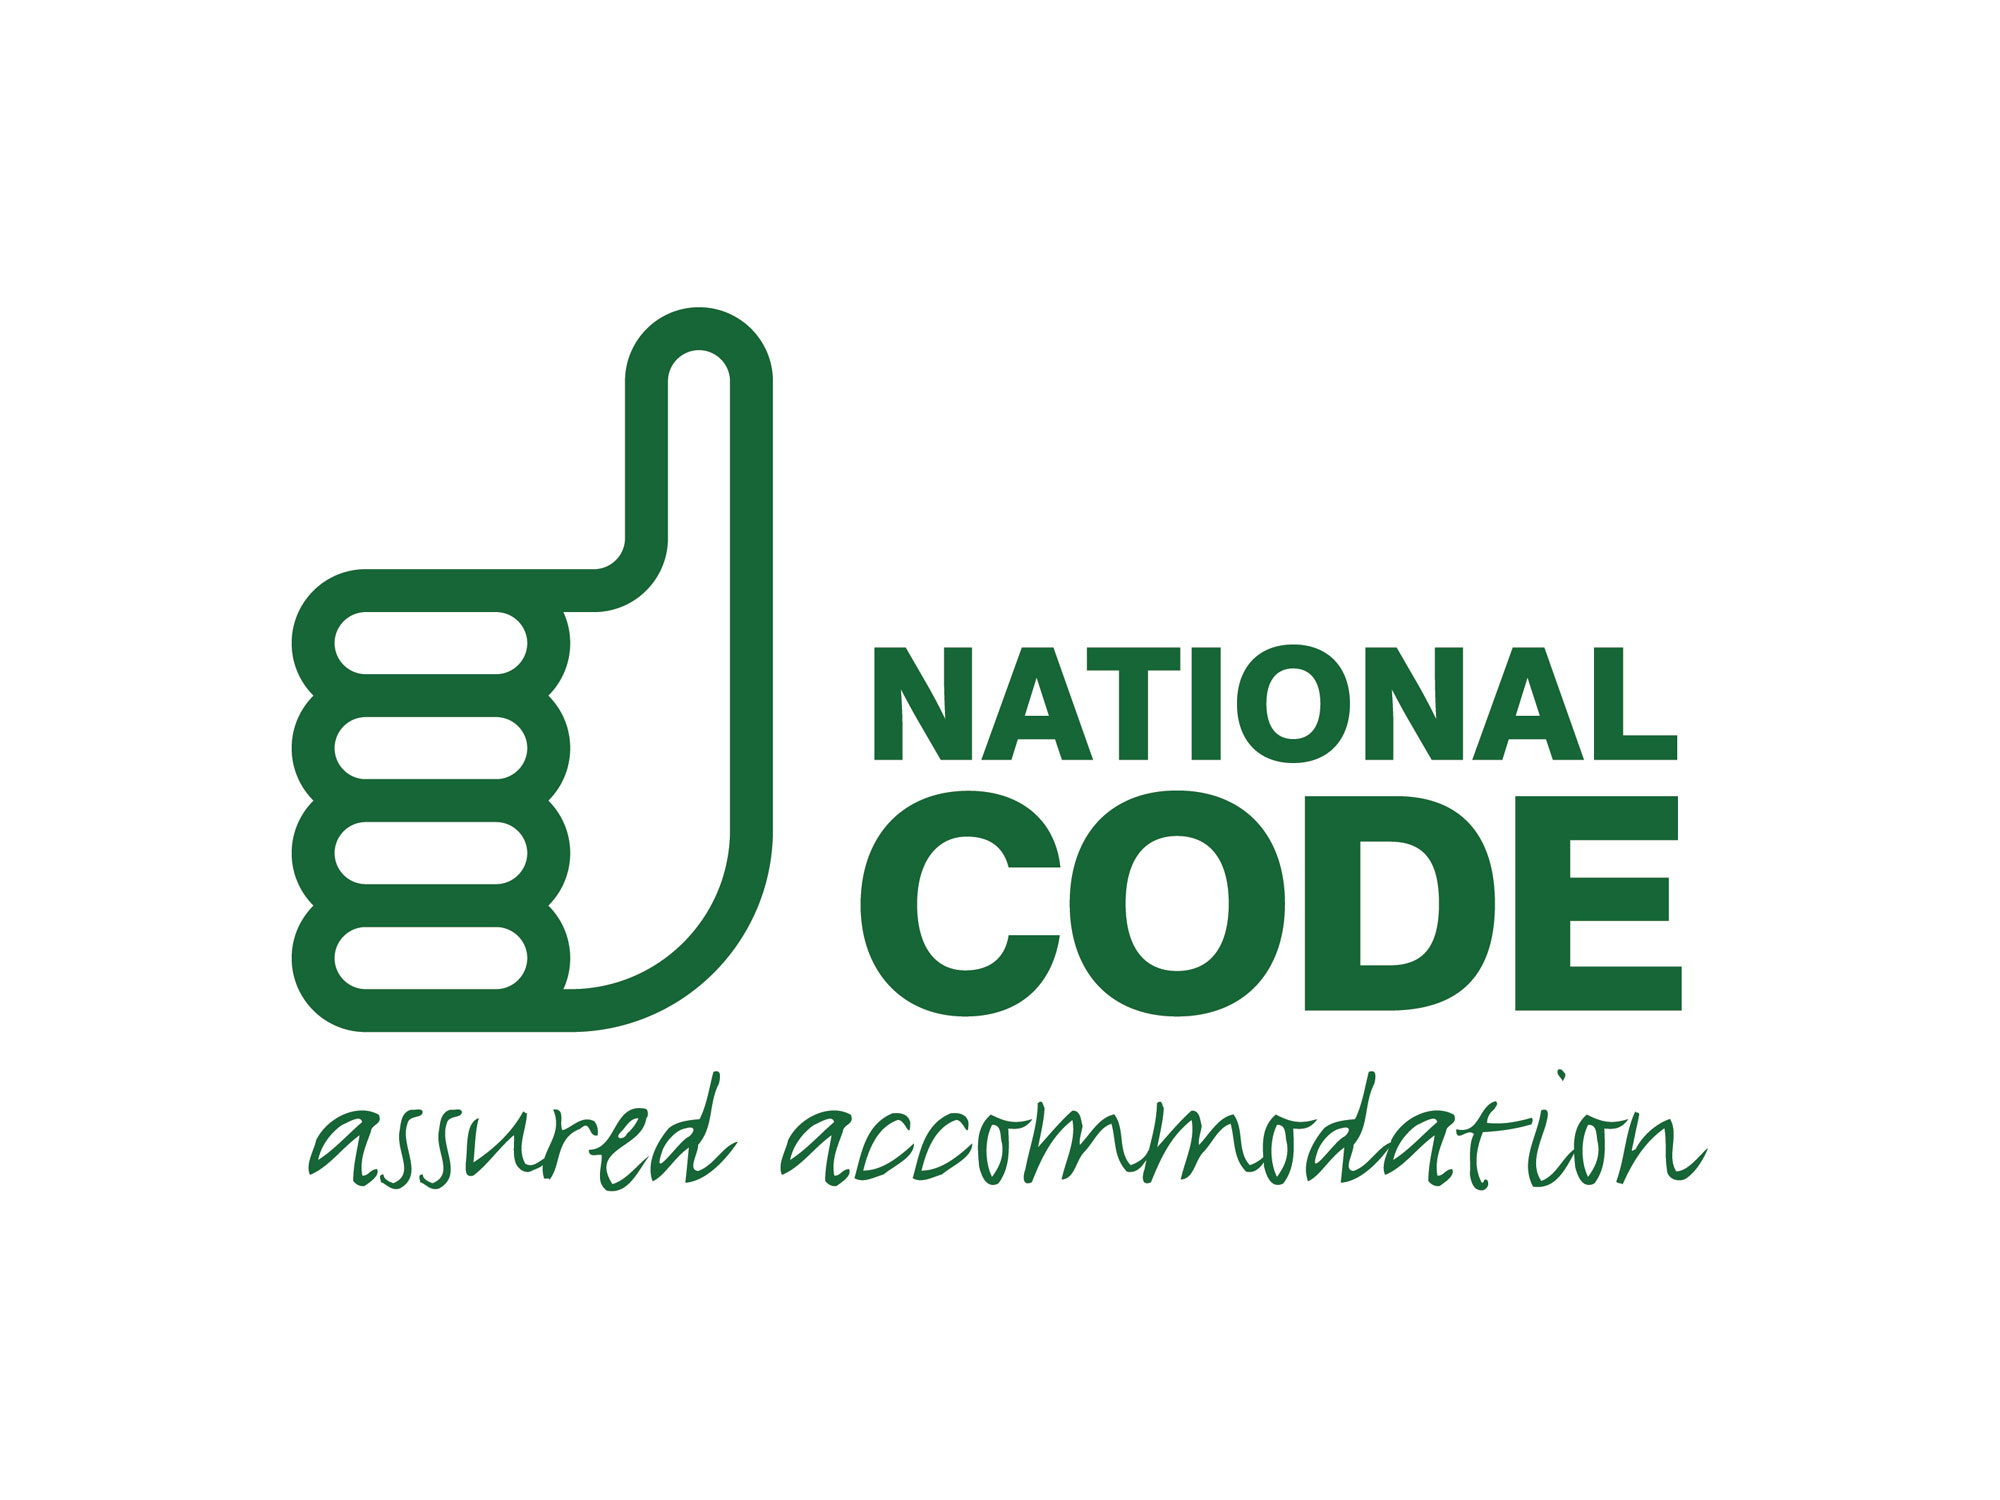 National Code logo.jpg